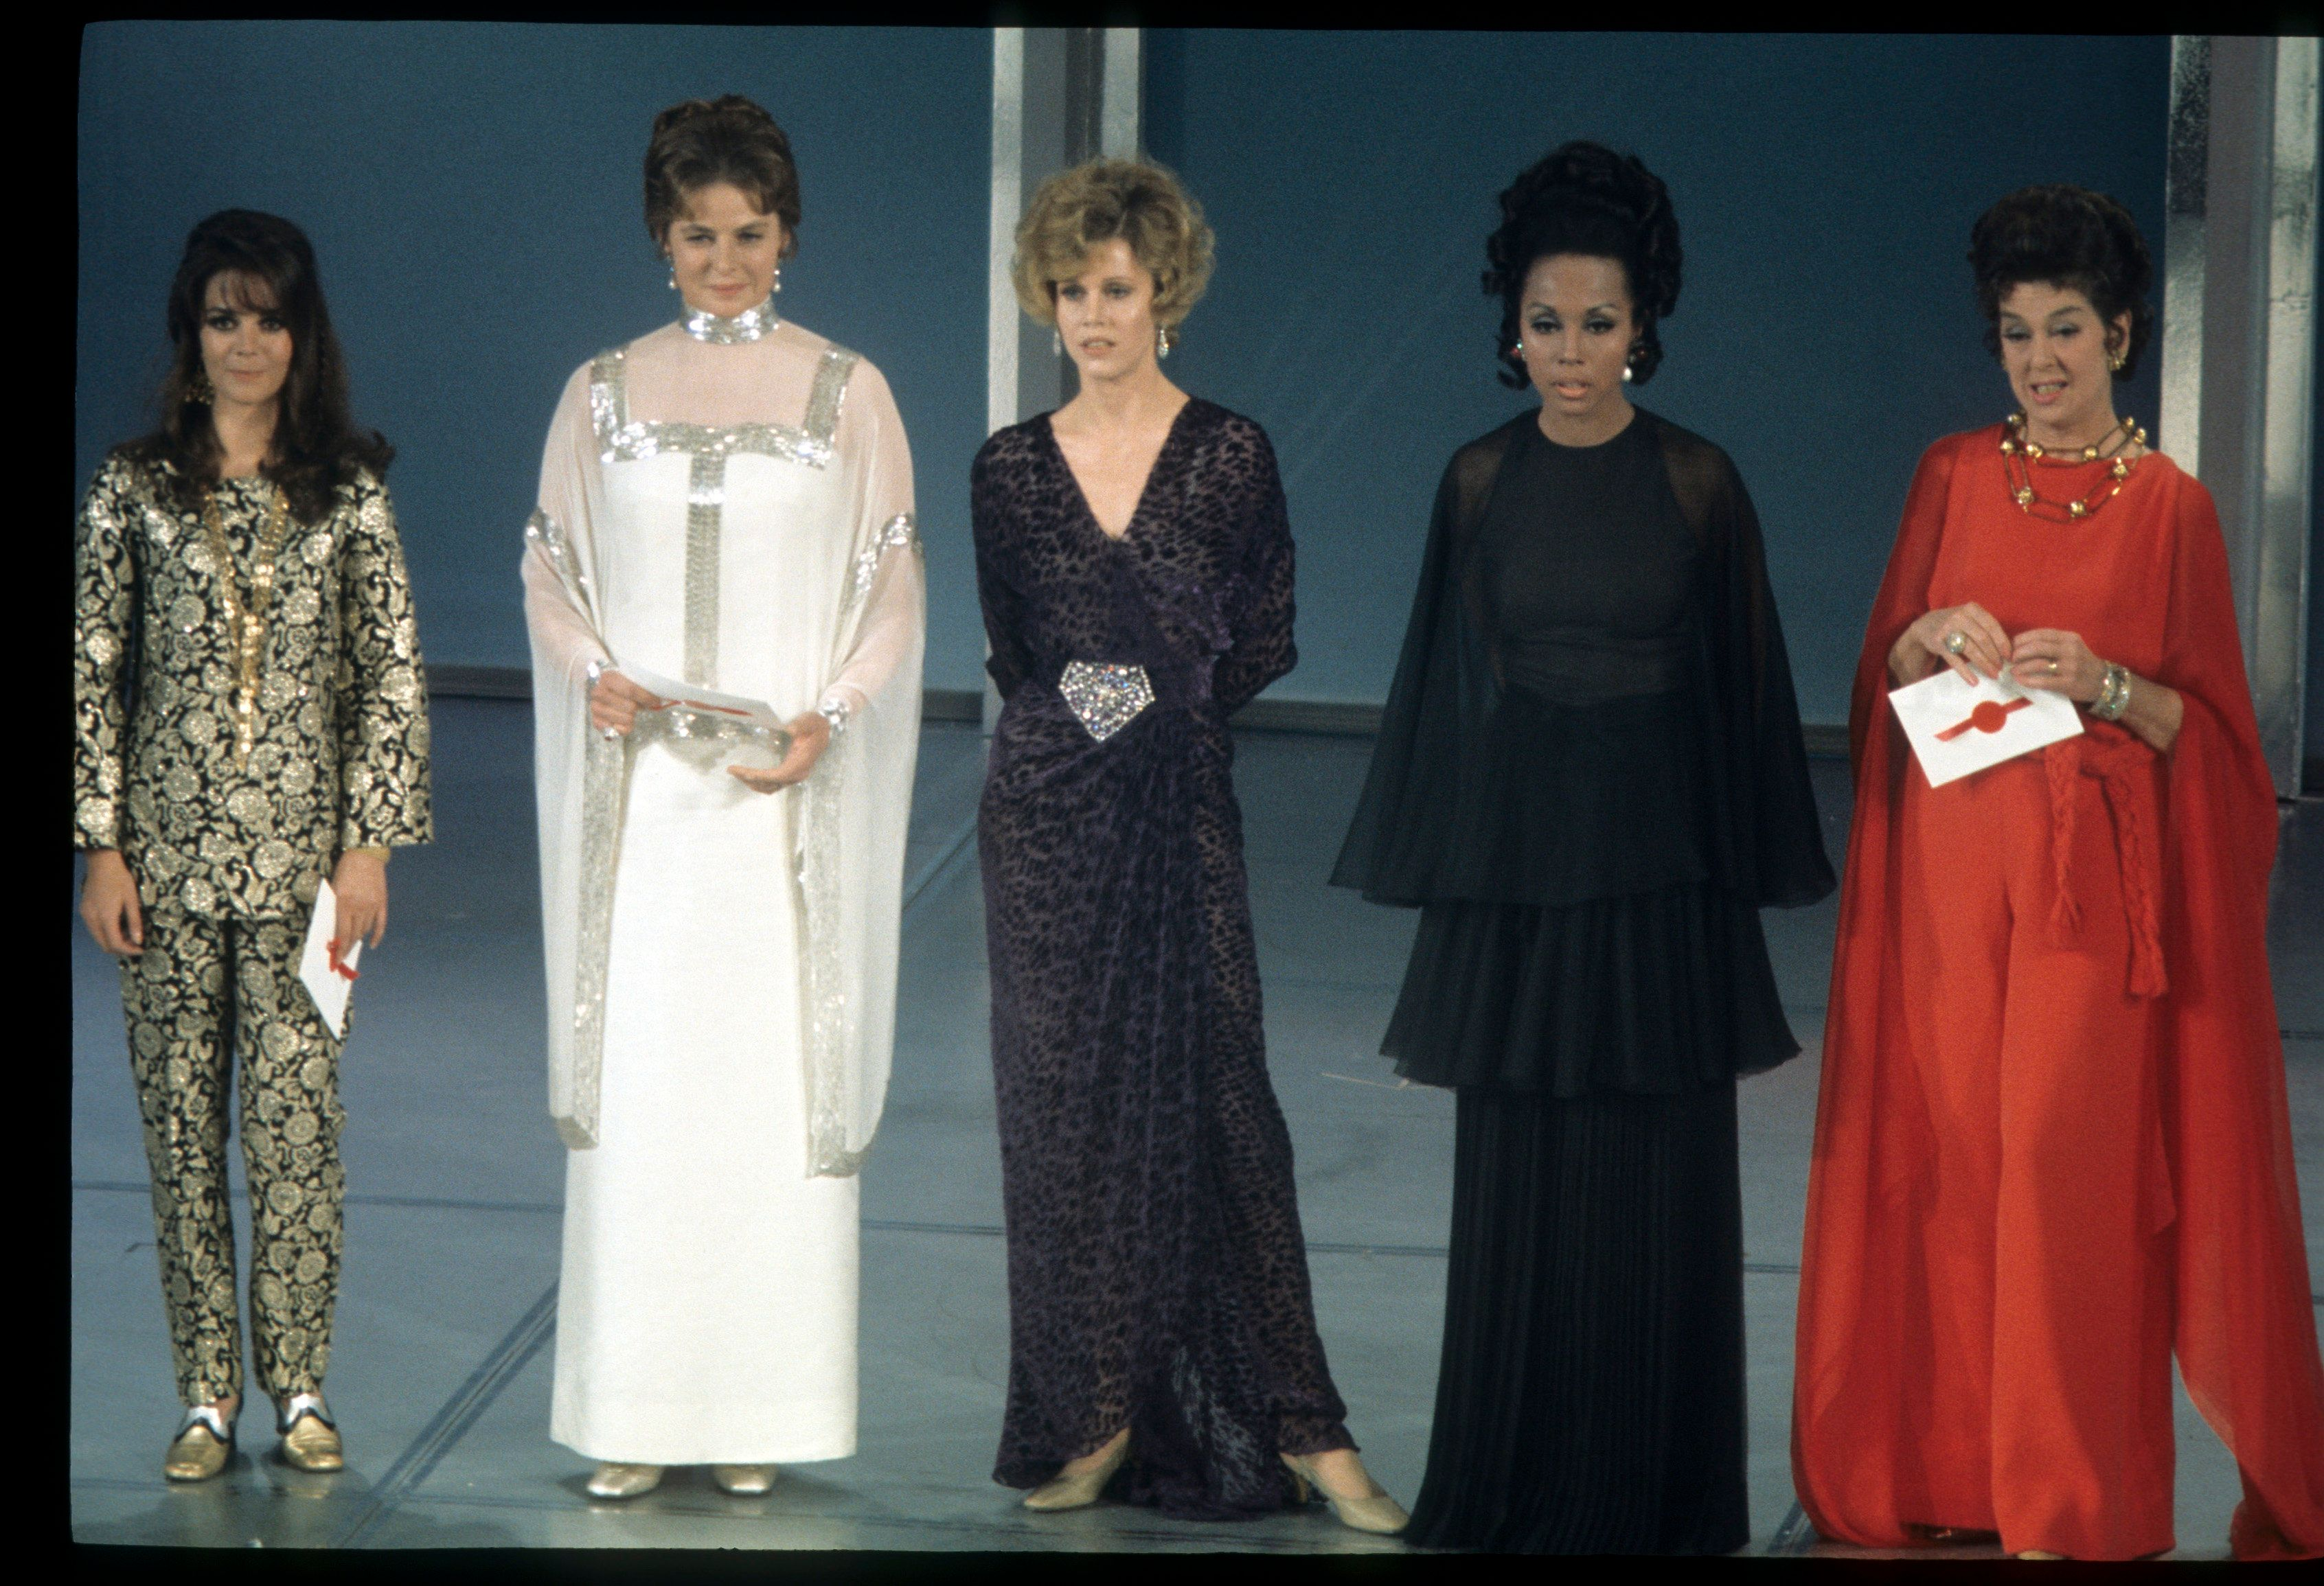 Here, the actress, standing beside Jane Fonda, wore a white and silver gown to present an award at the Academy Awards in 1969